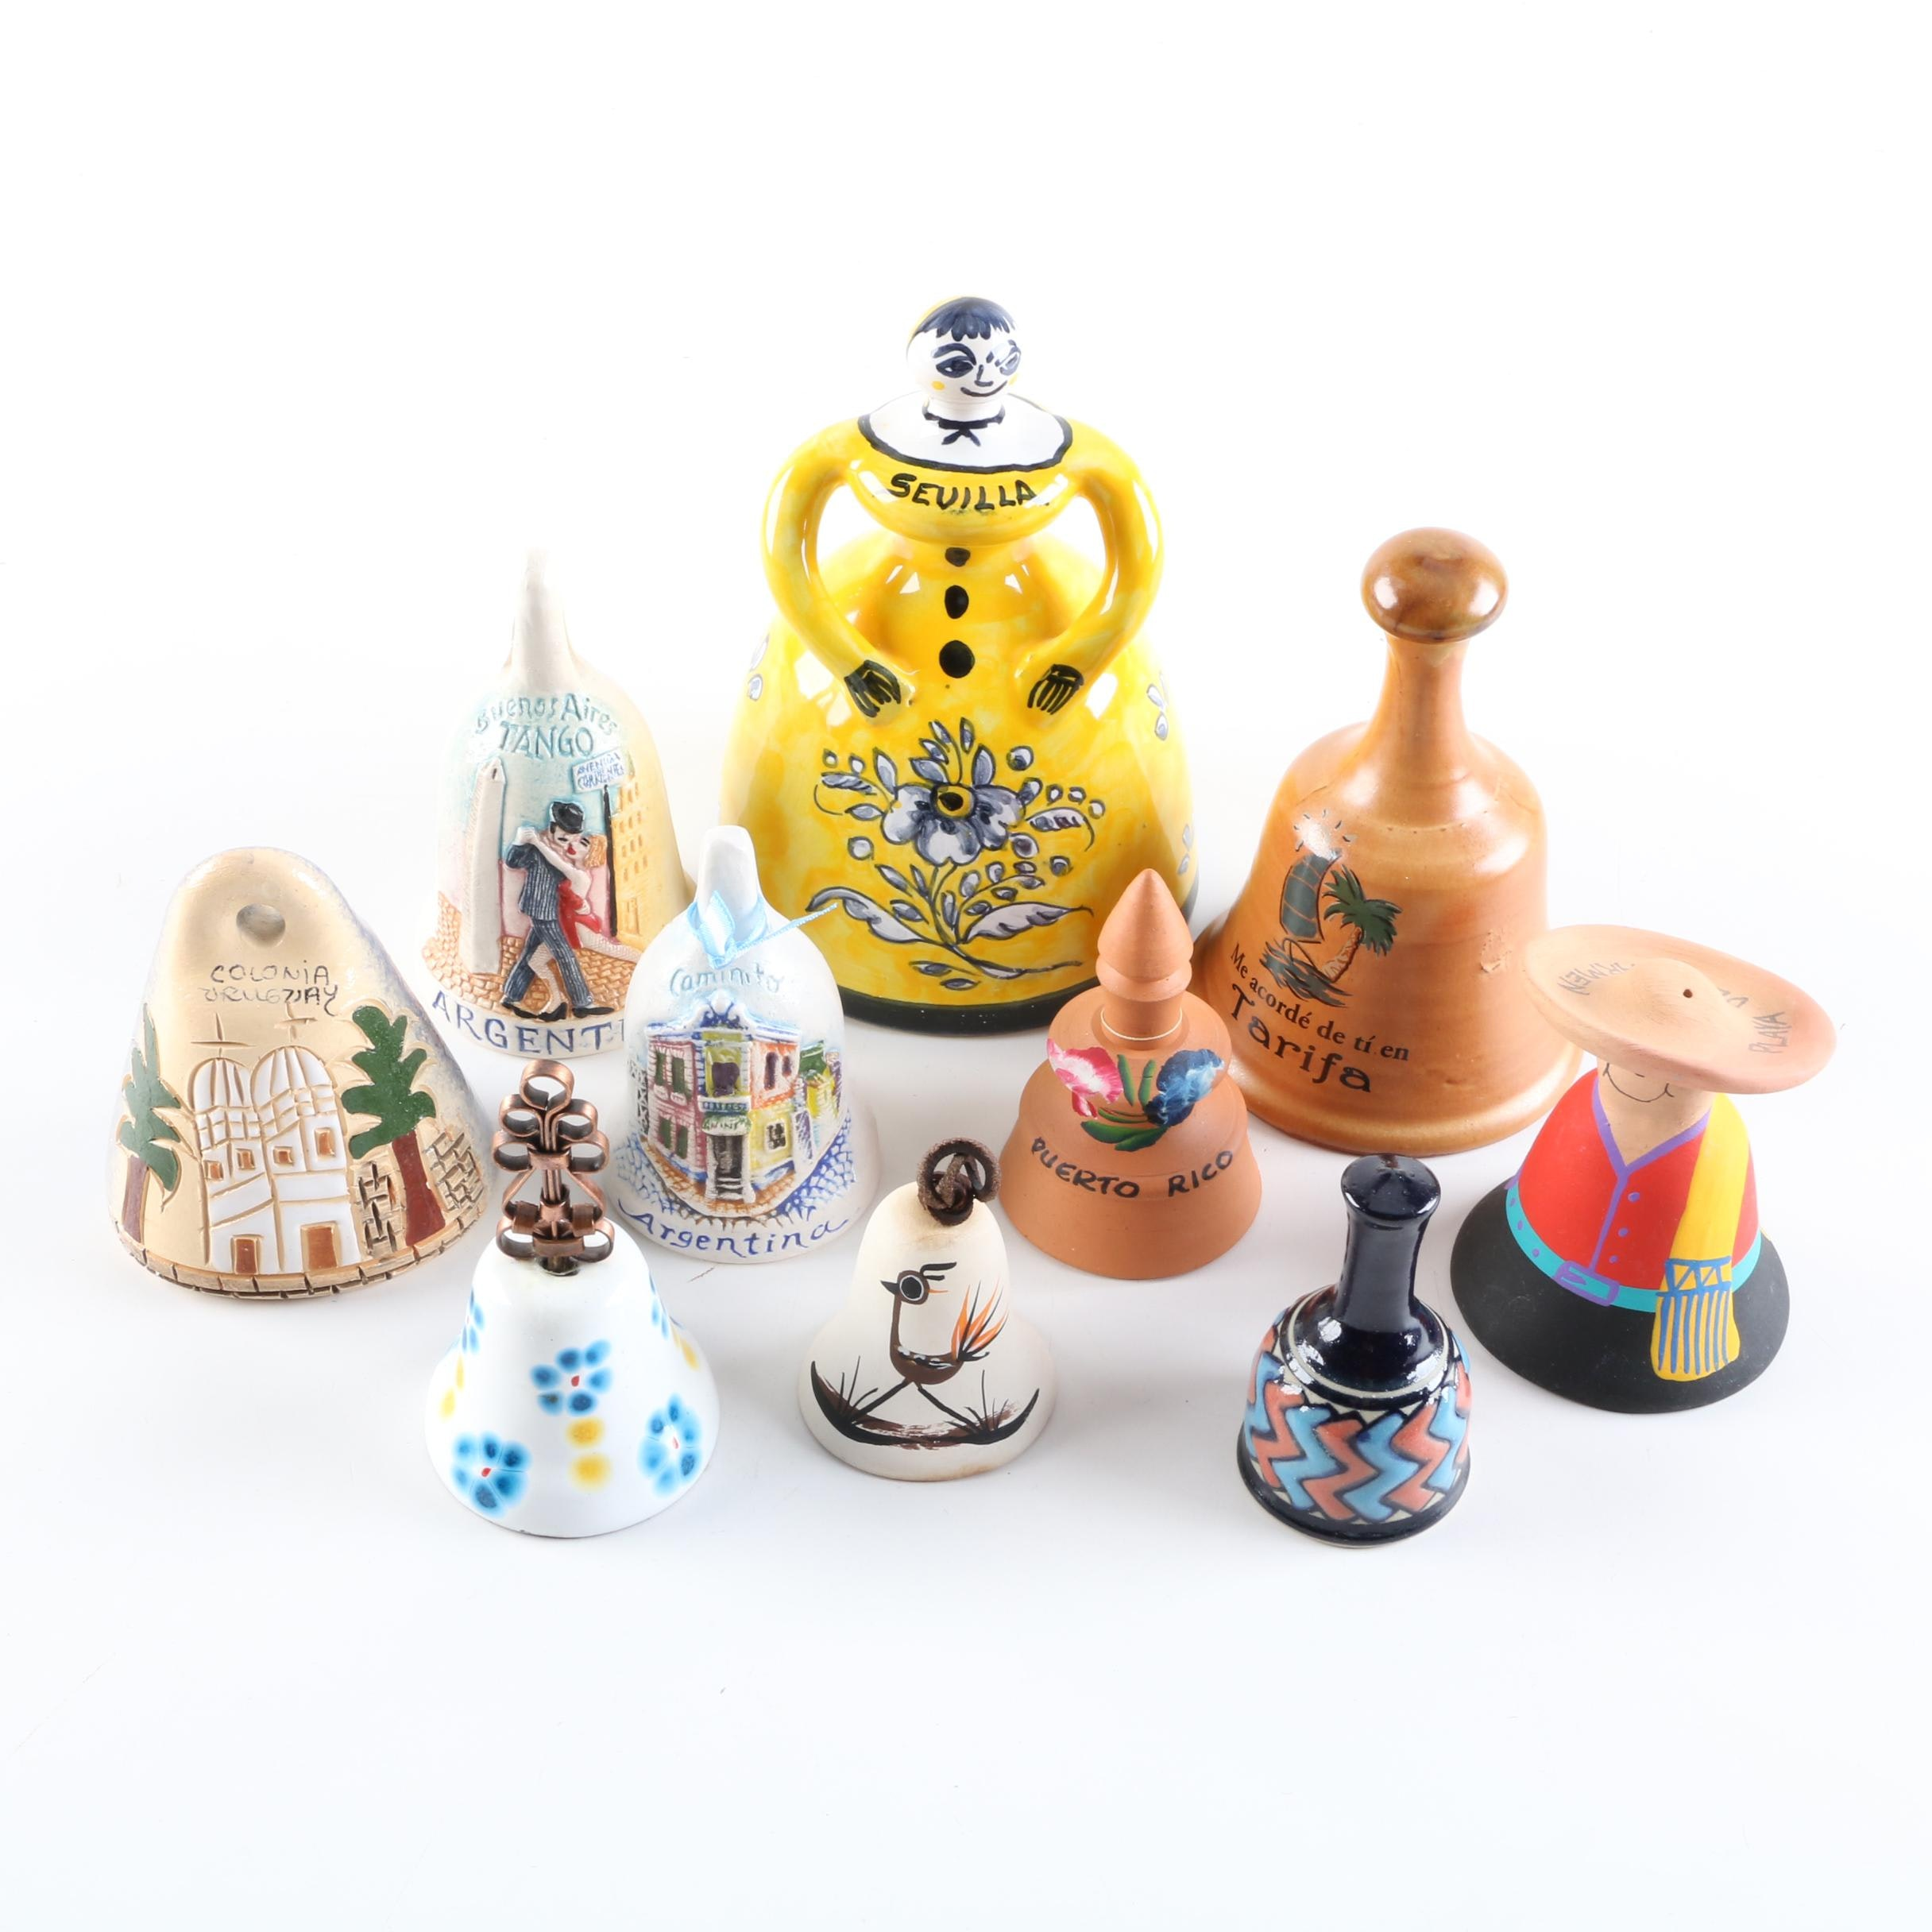 Souvenir Bells, Including Argentina, Uruguay, Sevilla, Mexico and Others